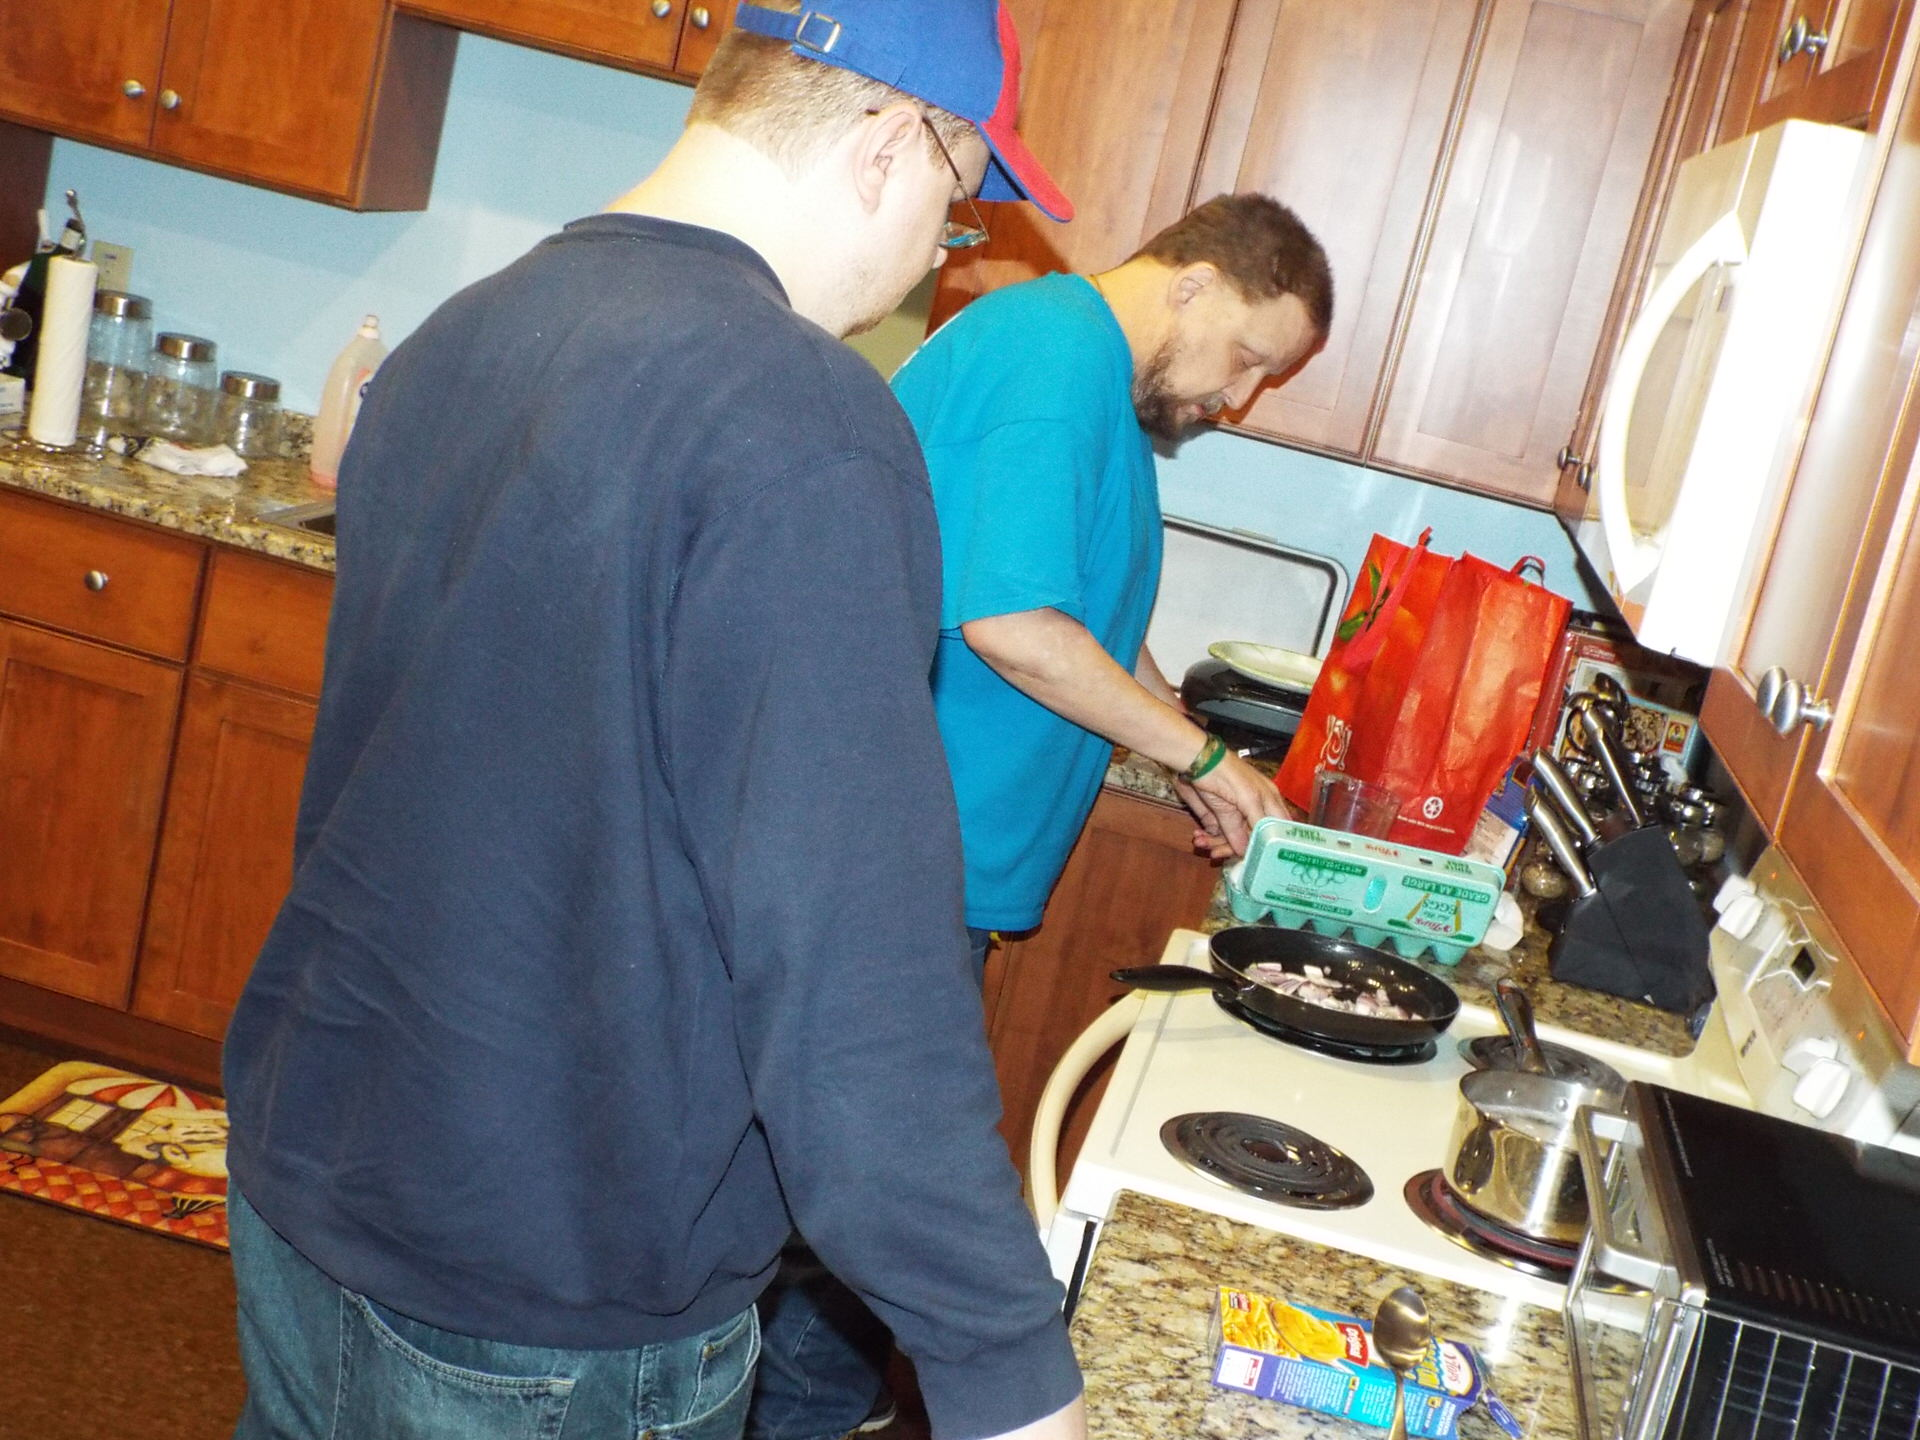 Seneca Square residents Erick K. and Clinton H. prepare food in the community's training kitchen.